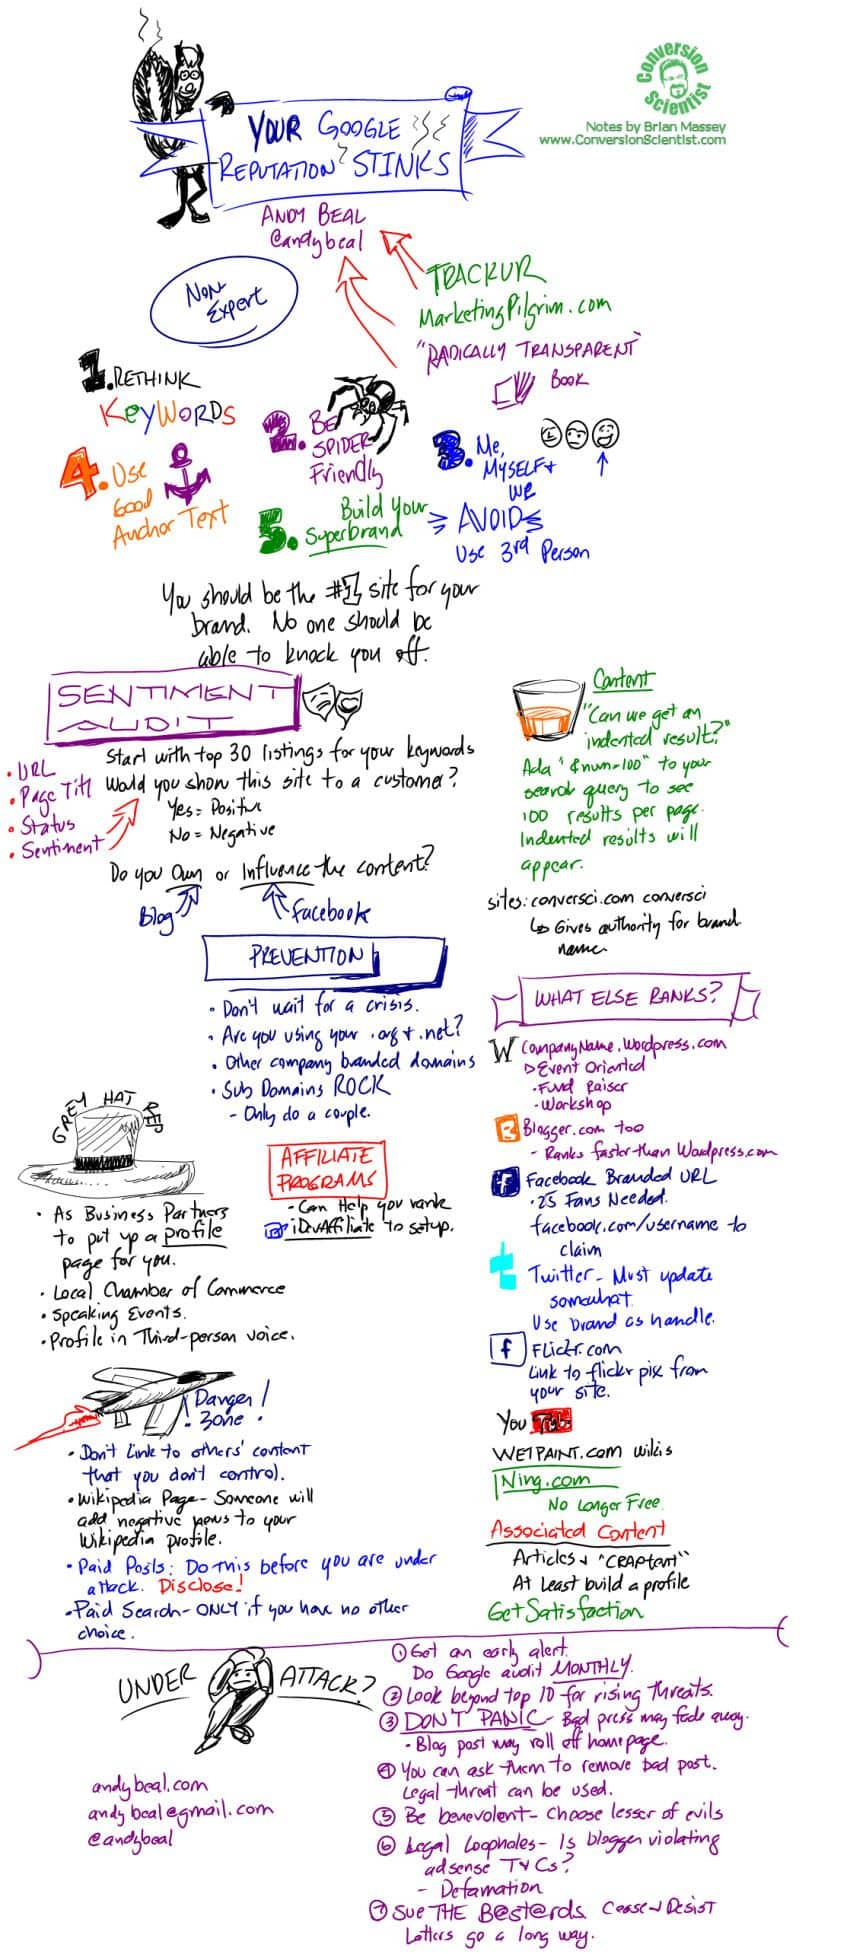 Andy Beal: Your Google Reputation Stinks Infographic.